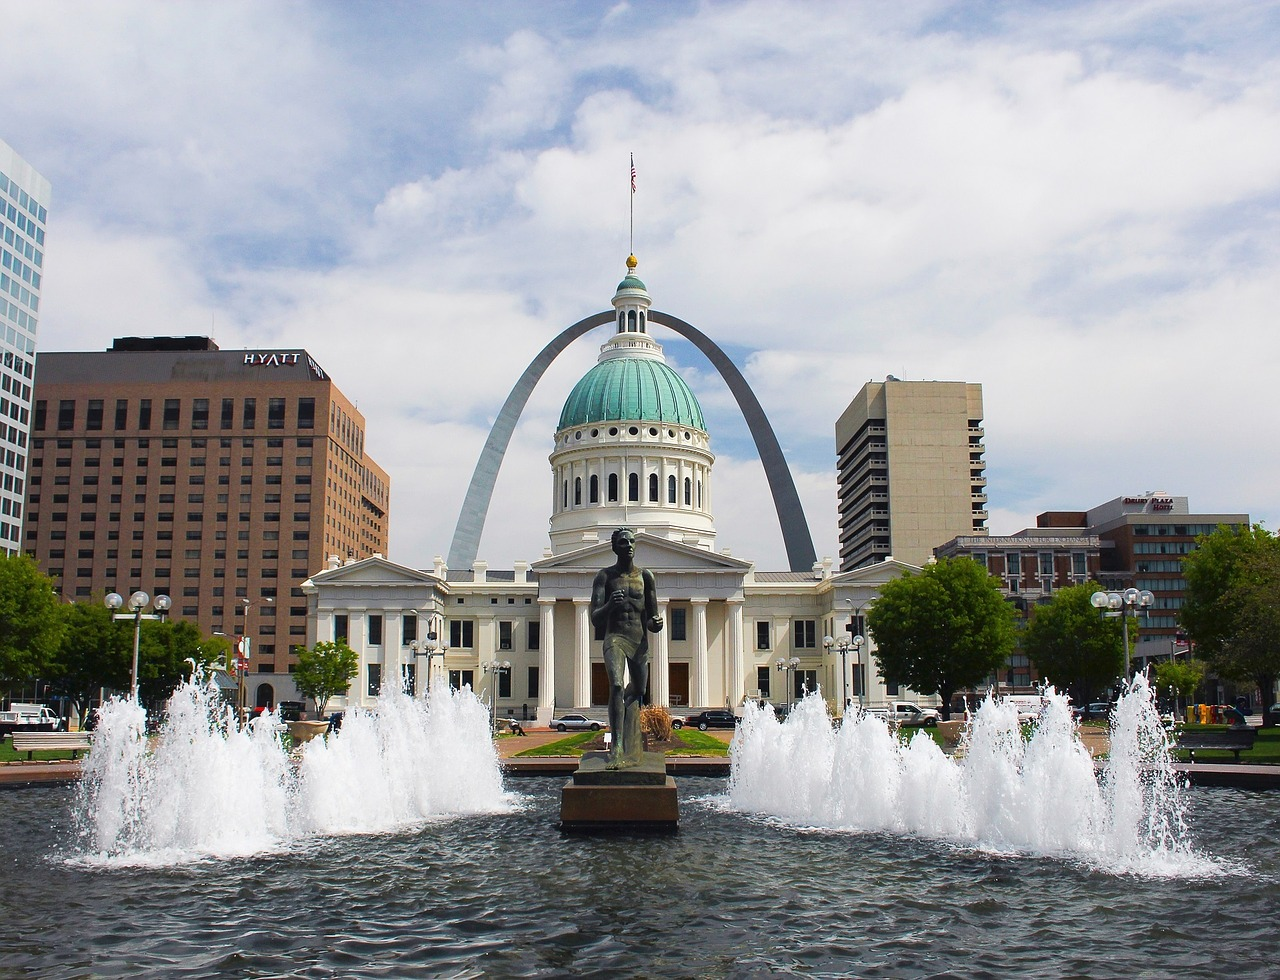 Kiener Plaza, featuring the famous Gateway Arch in the background (Image:  Pixabay )